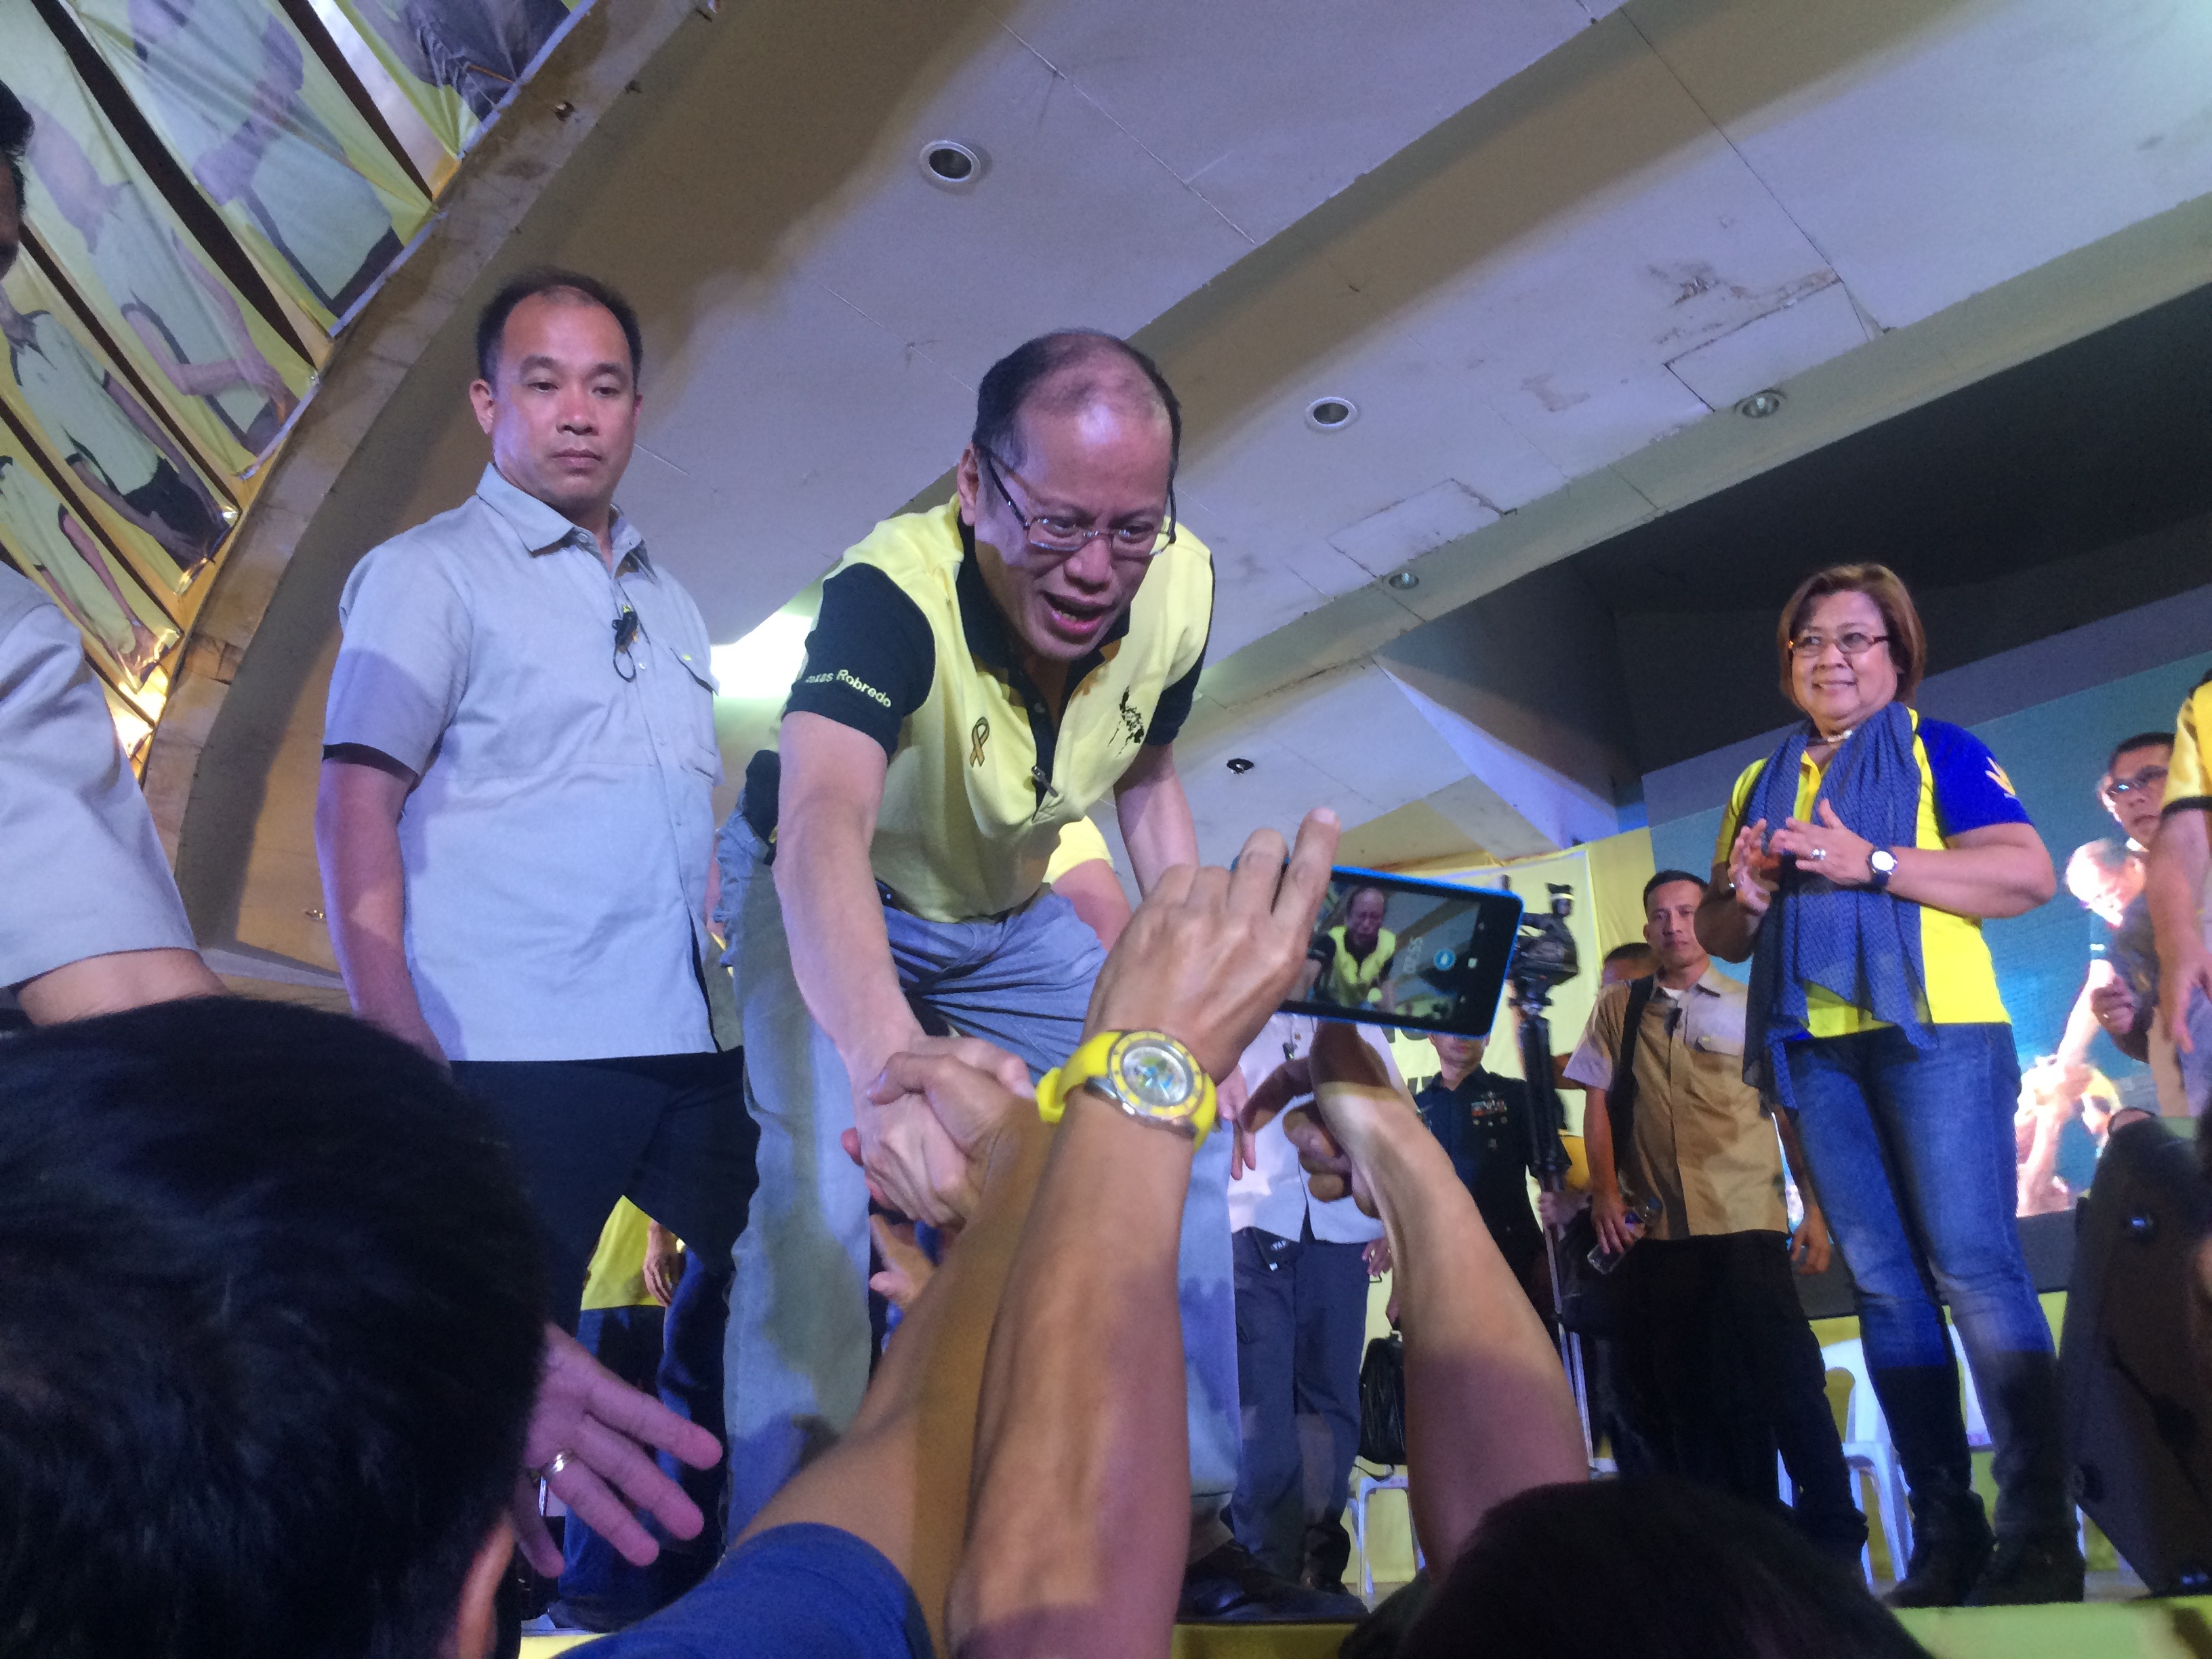 CHIEF CAMPAIGNER. President Aquino woos Bicolano votes for the LP coalition. File photo by Bea Cupin/Rappler